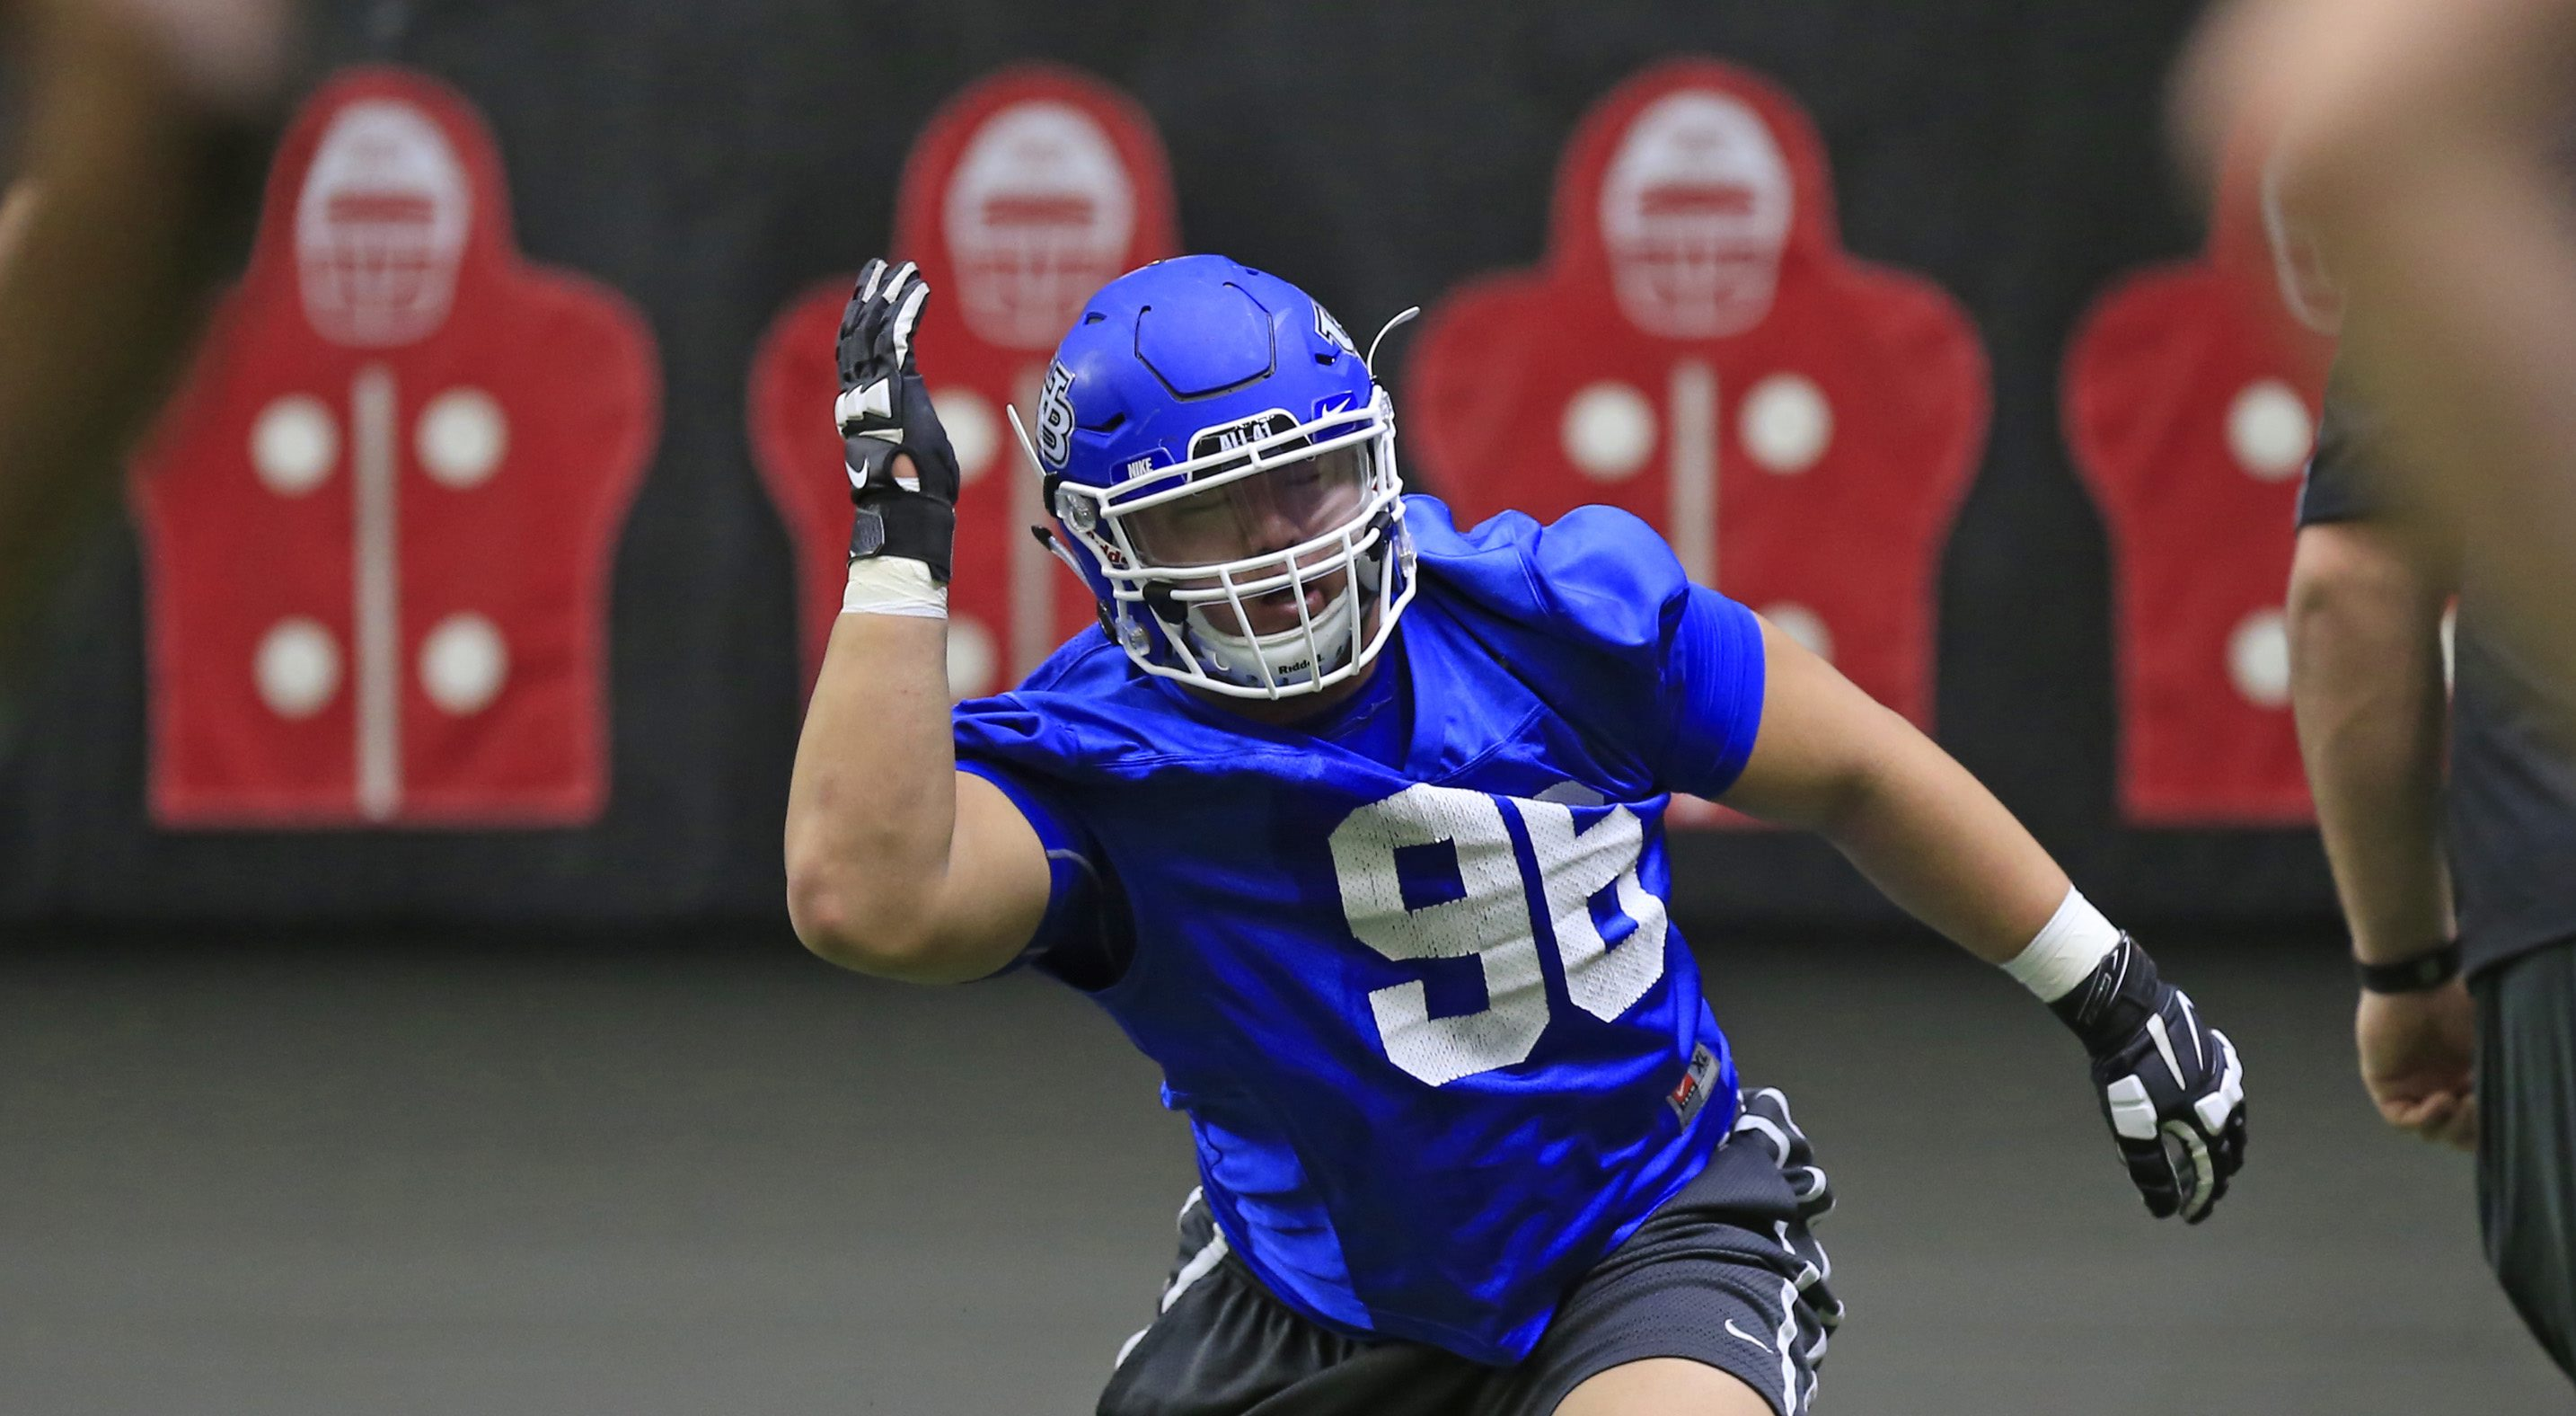 Duke Hwang works on defensive drills during spring practice at the ADPRO training center on Thursday, March 24, 2016. (Harry Scull Jr./Buffalo News)